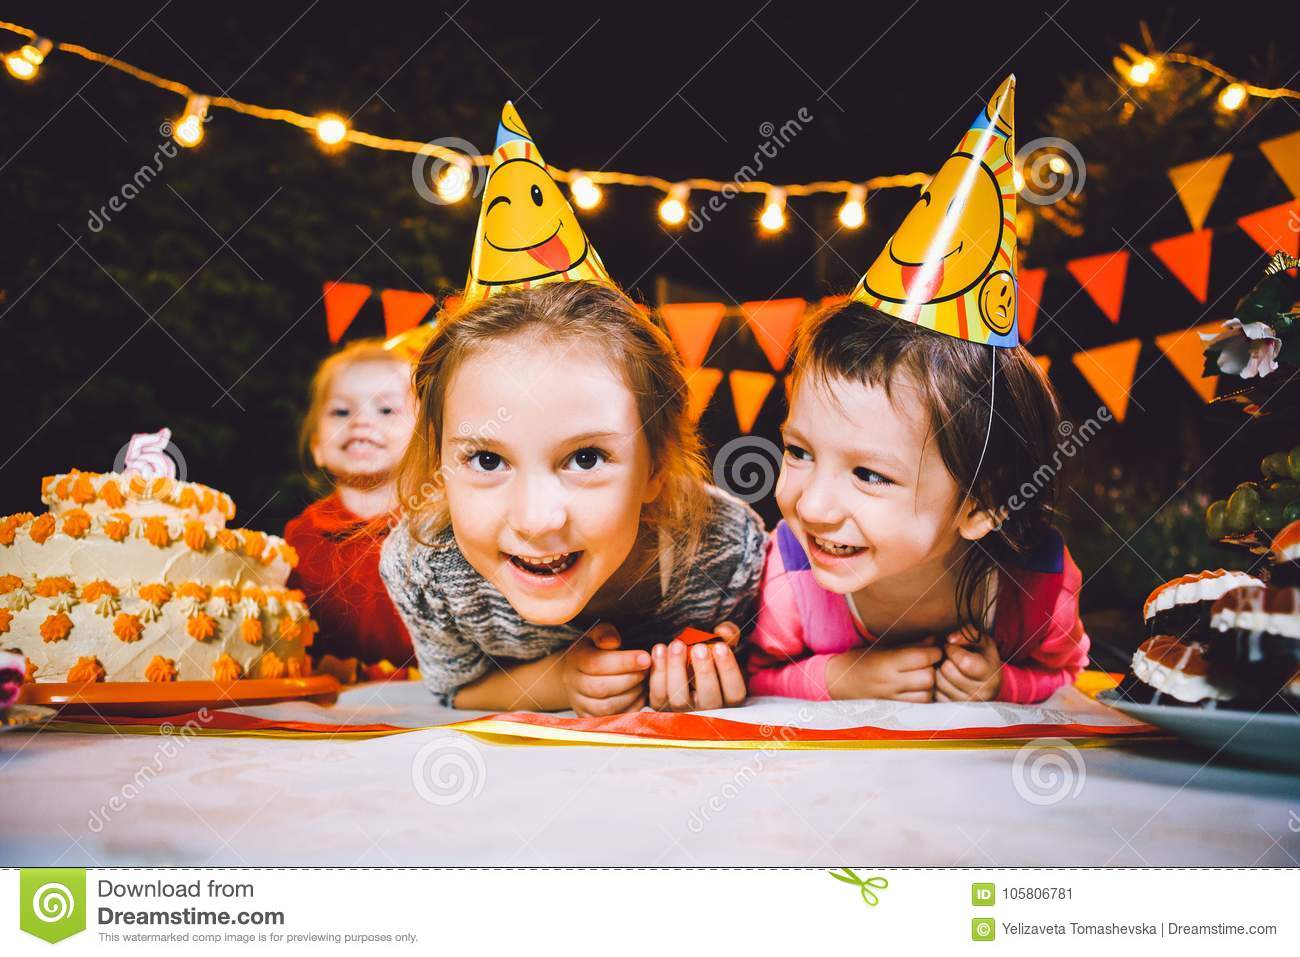 Children`s birthday party. Three cheerful children girls at the table eating cake with their hands and smearing their face. Fun a